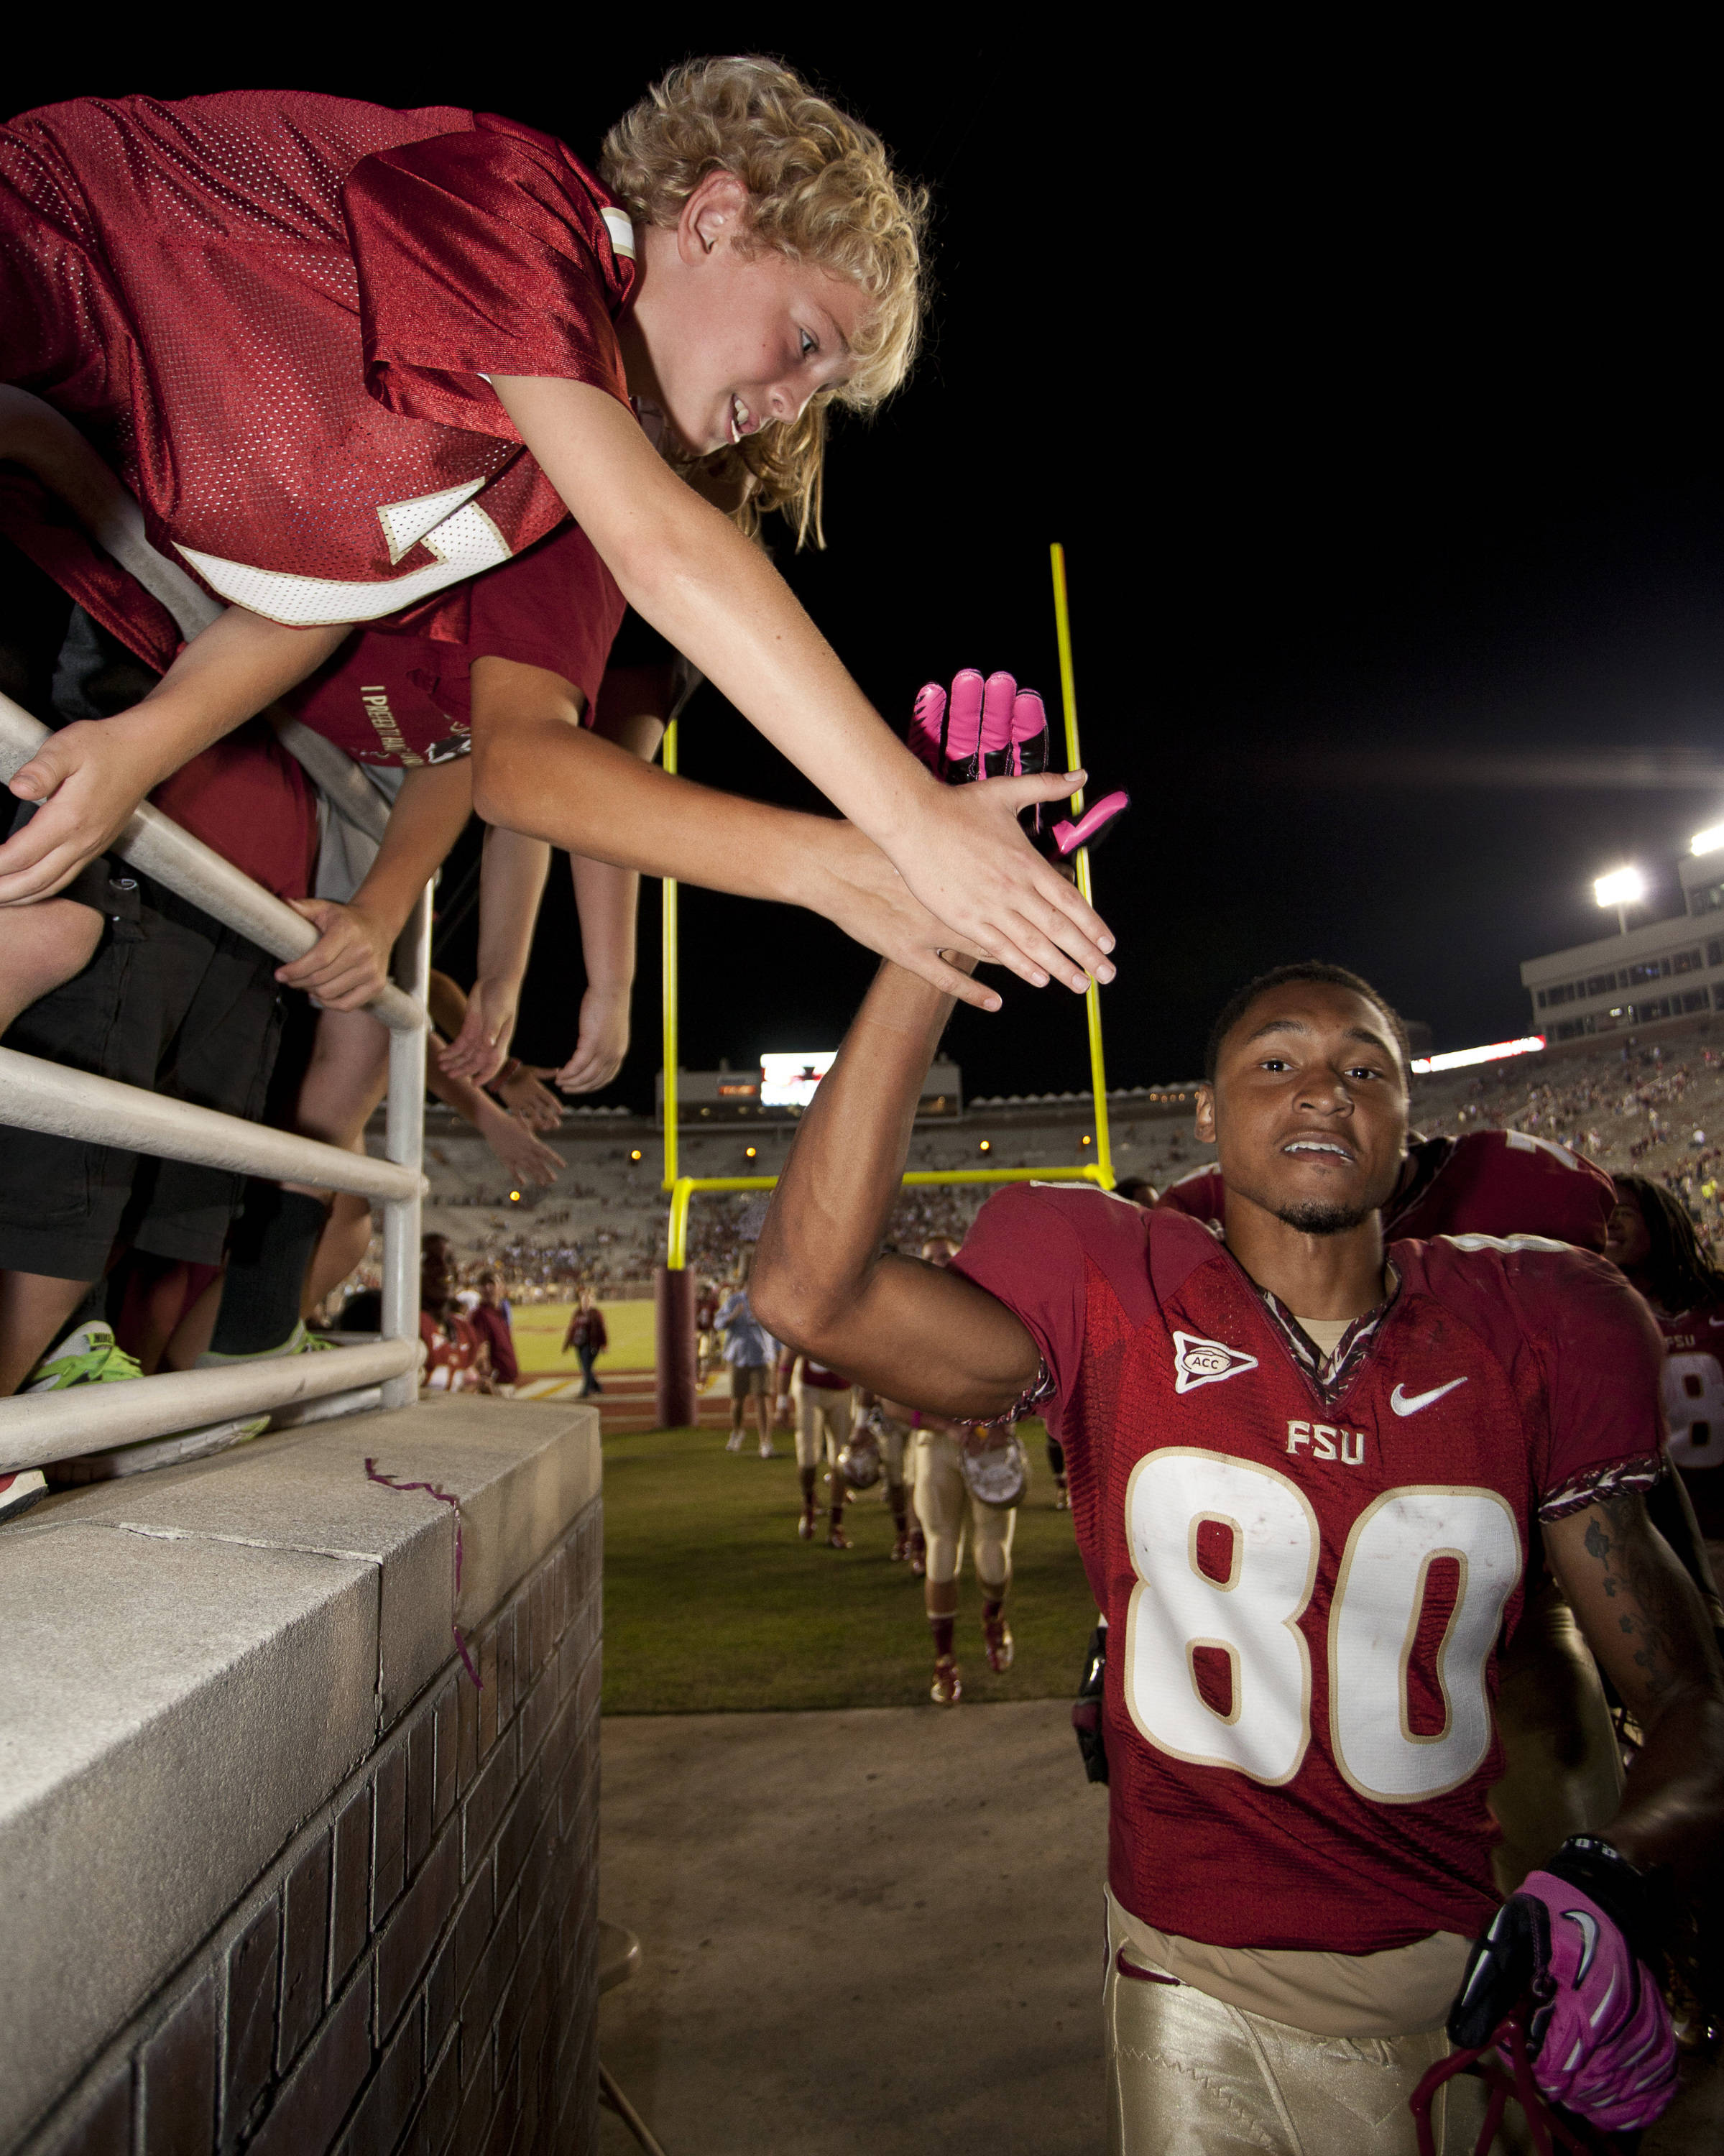 Rashad Greene (80) high-fives a young fan after the FSU vs Boston College football game on October 13, 2012 in Tallahassee, Fla.